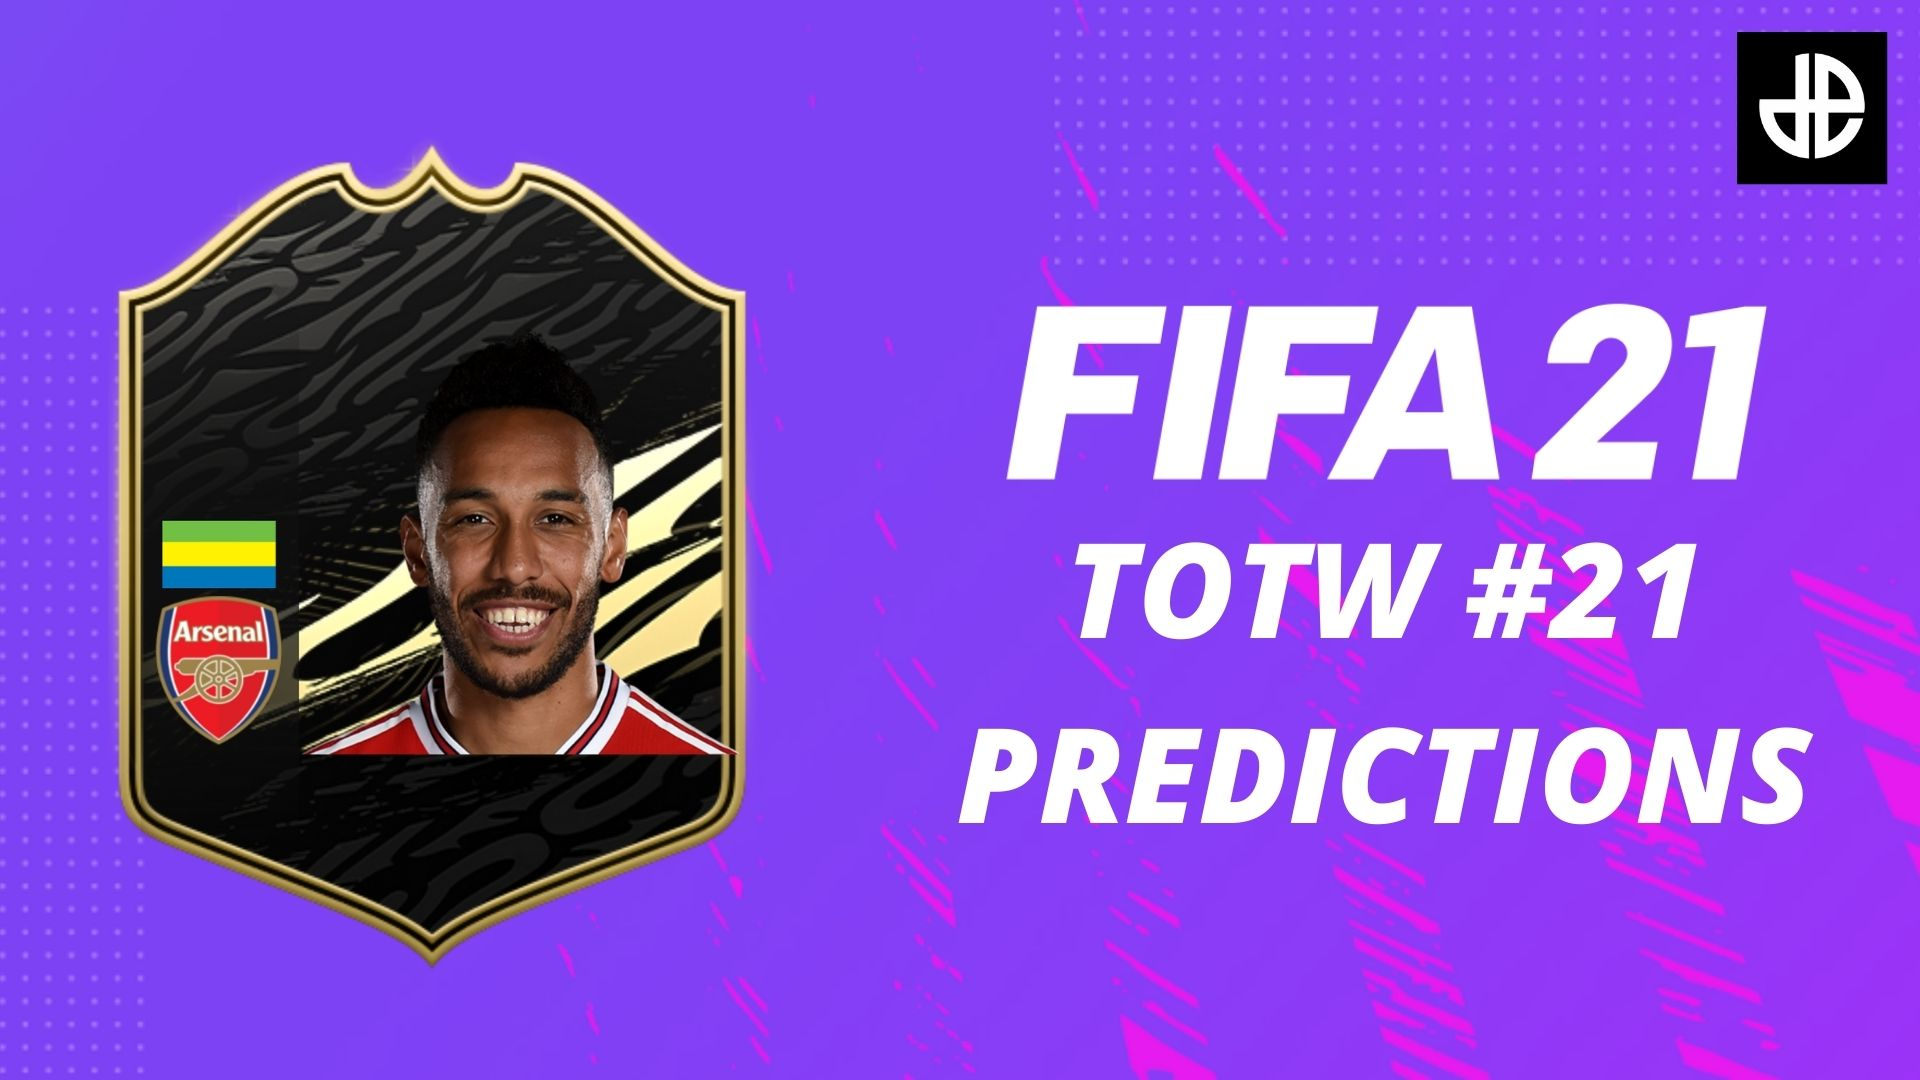 Pierre-Emerick Aubameyang with a FIFA 21 TOTW Card in TOTW 21 predictions